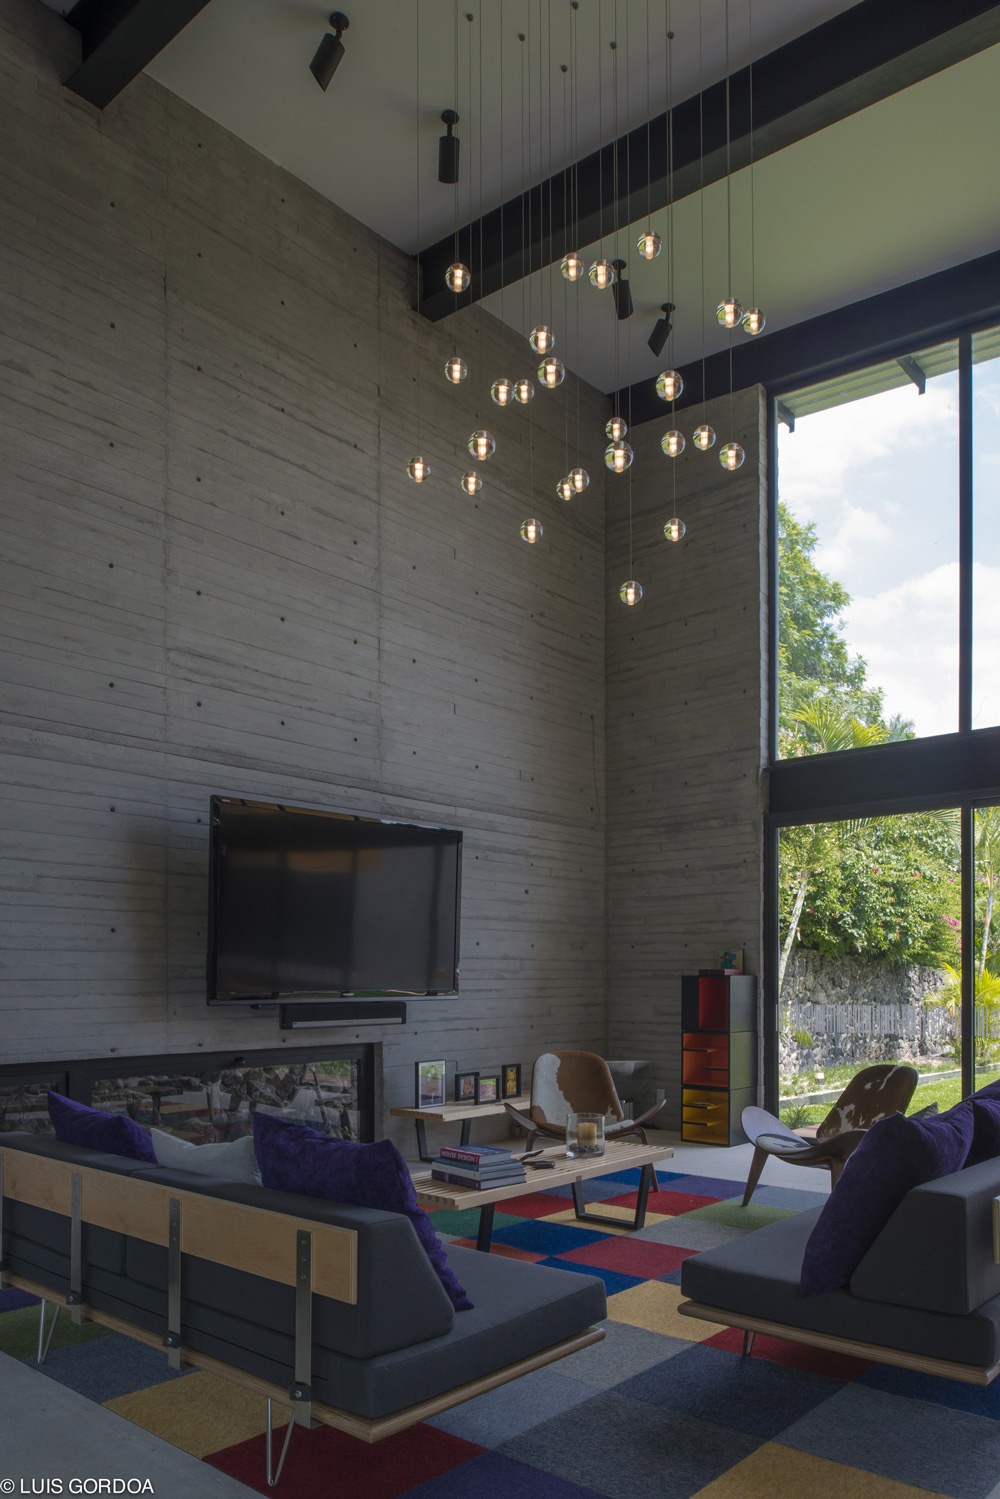 Pendant Lighting, Living Room, Weekend Retreat in Cuernavaca, Mexico